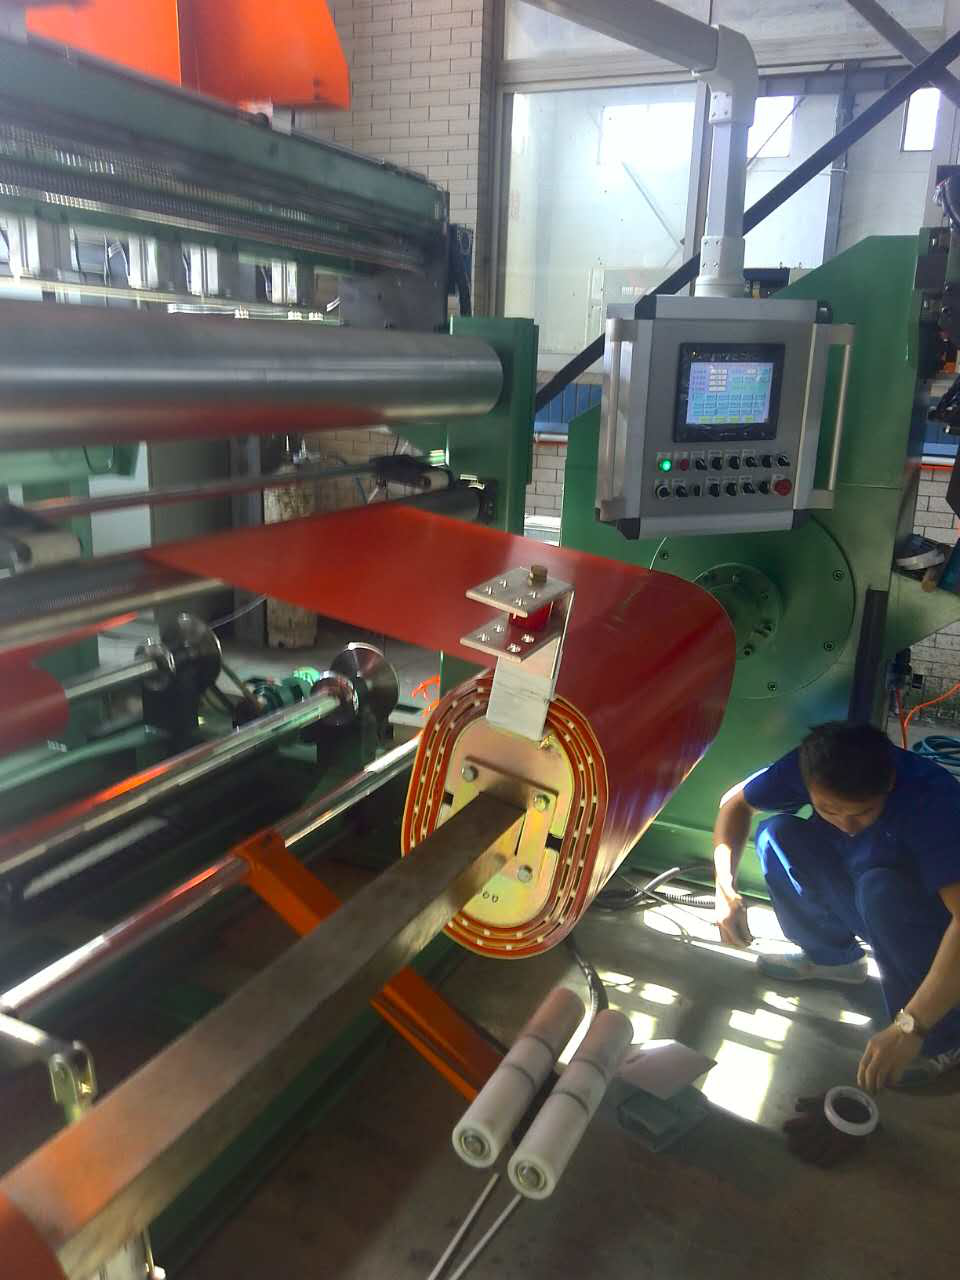 Fully Automatic Foil Winding Machine Manufacturers, Fully Automatic Foil Winding Machine Factory, Supply Fully Automatic Foil Winding Machine